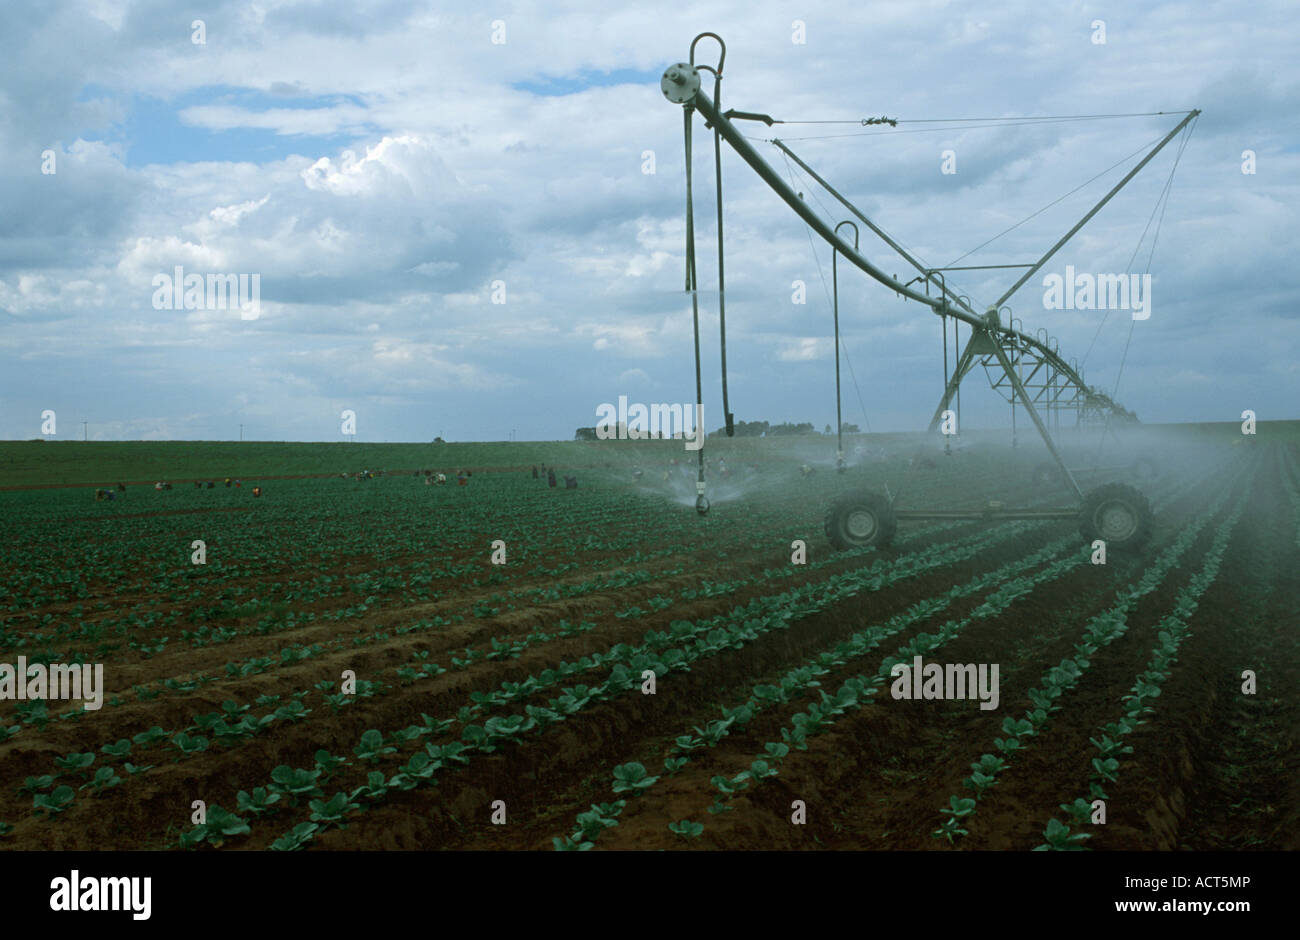 A centre pivot irrigation system irrigating a field of cabbage Near Bronkhorstspruit Gauteng South Africa - Stock Image